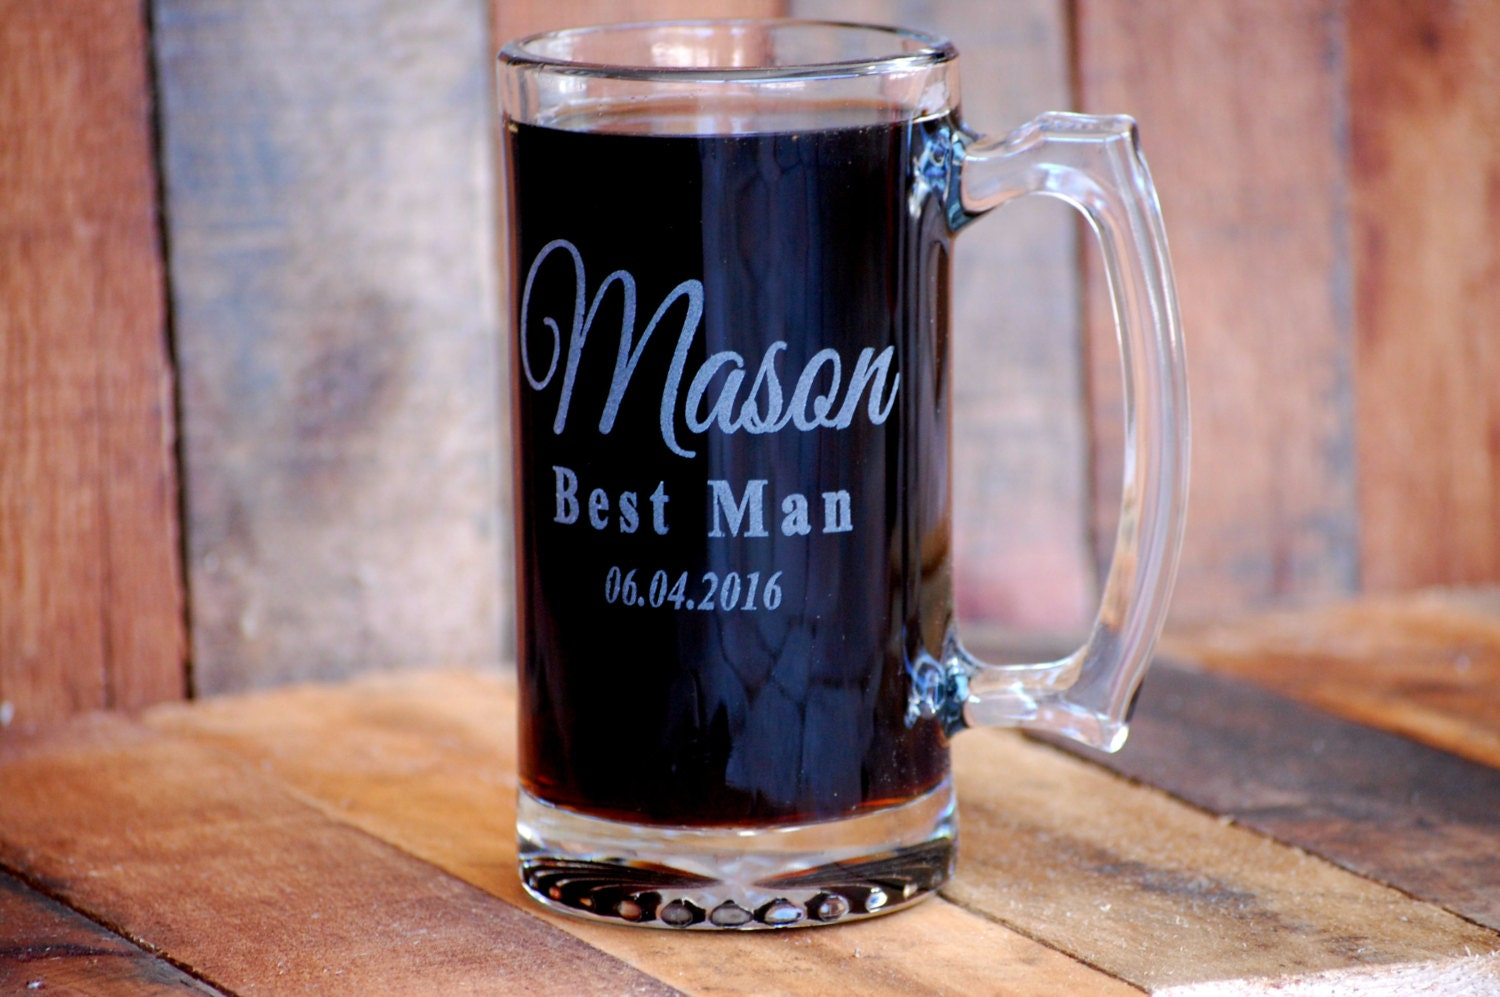 Wedding Gift Beer Mugs : Wedding Beer Mugs Personalized Groomsmen Gifts Customized Beer